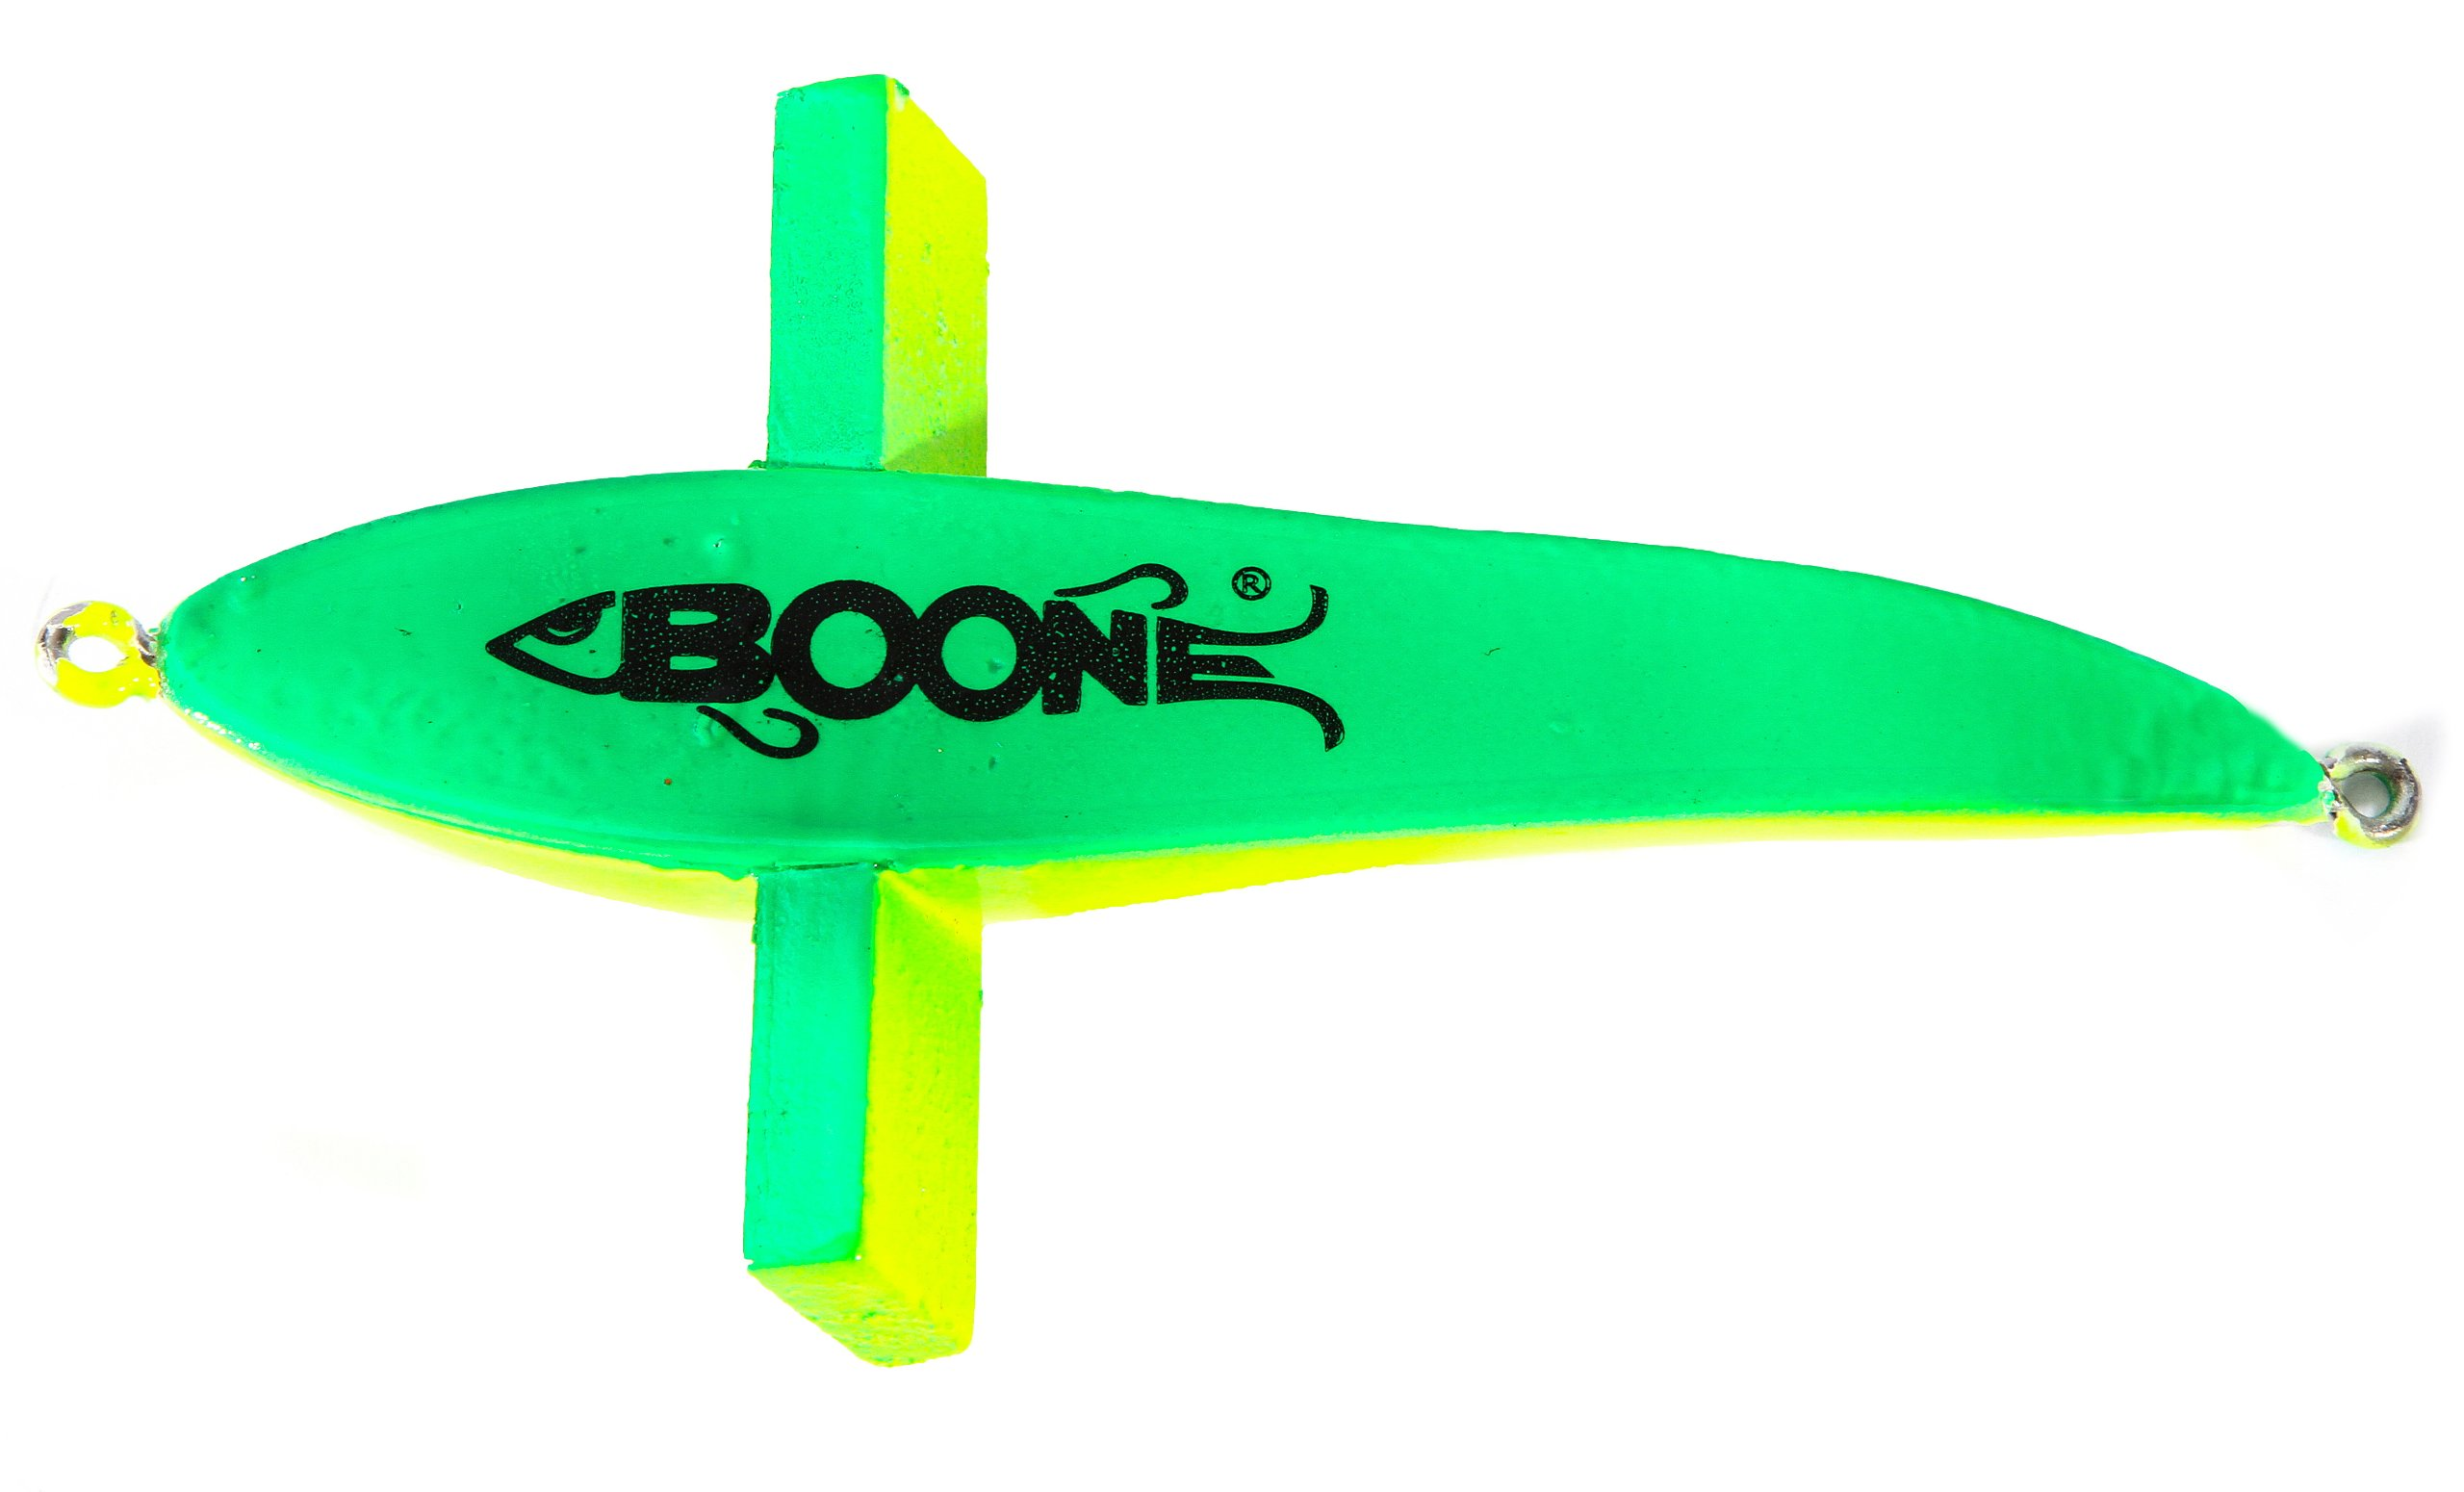 Boone Baby Bird Unrigged Teaser, Dolphin, 4 1/2-Inch by Boone